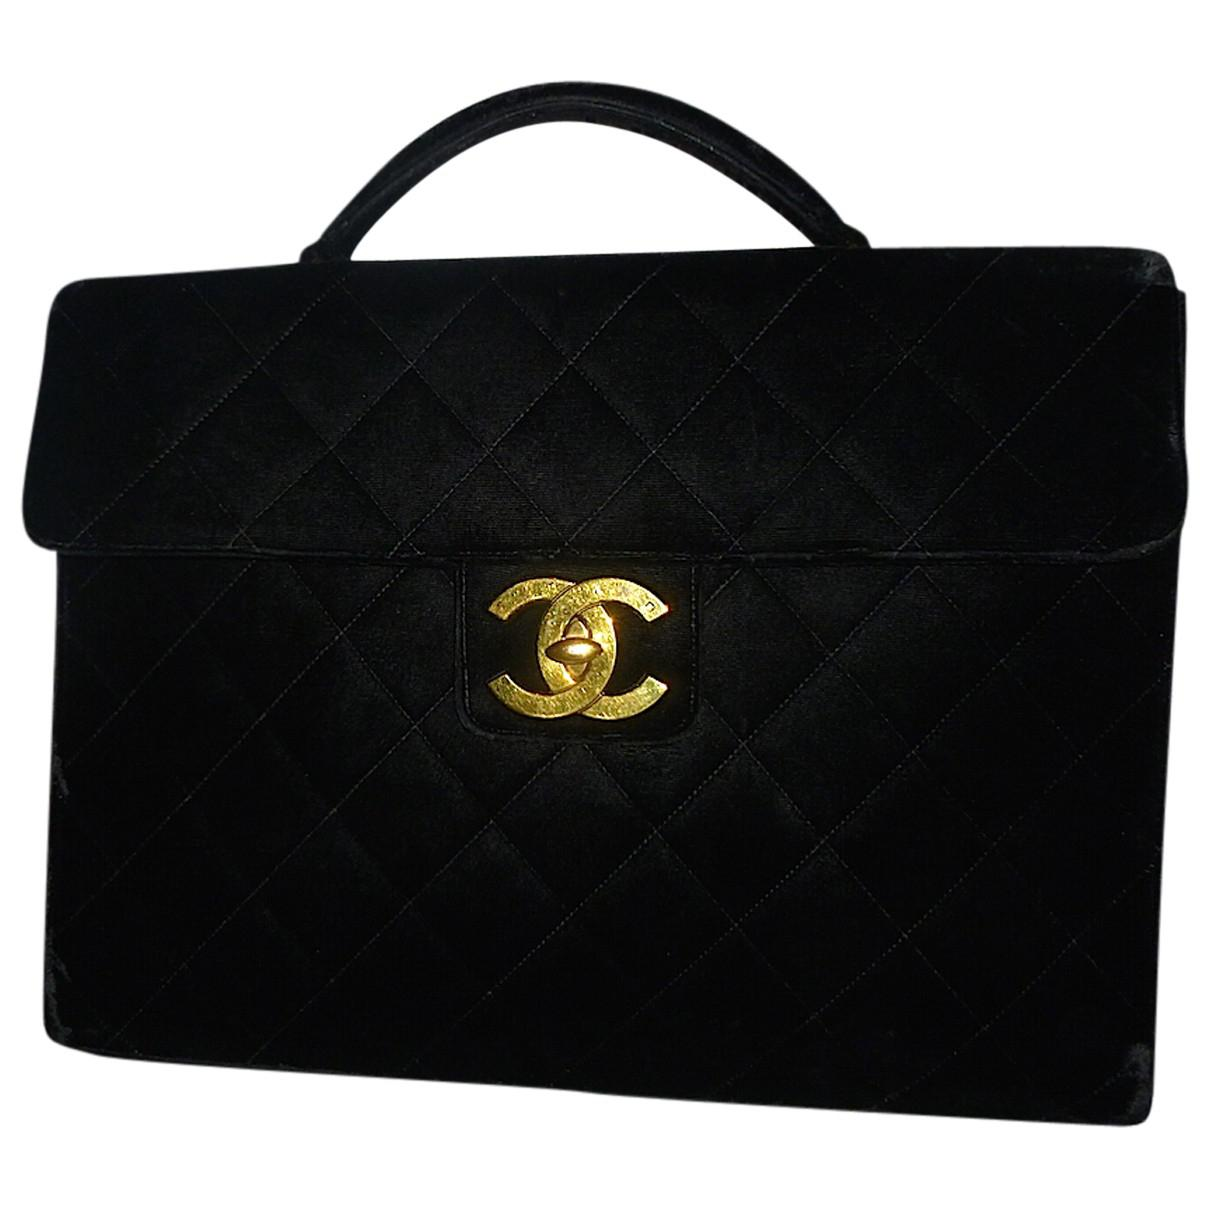 Occasion - Velours Chanel Sac À Main mQGf3jLjed